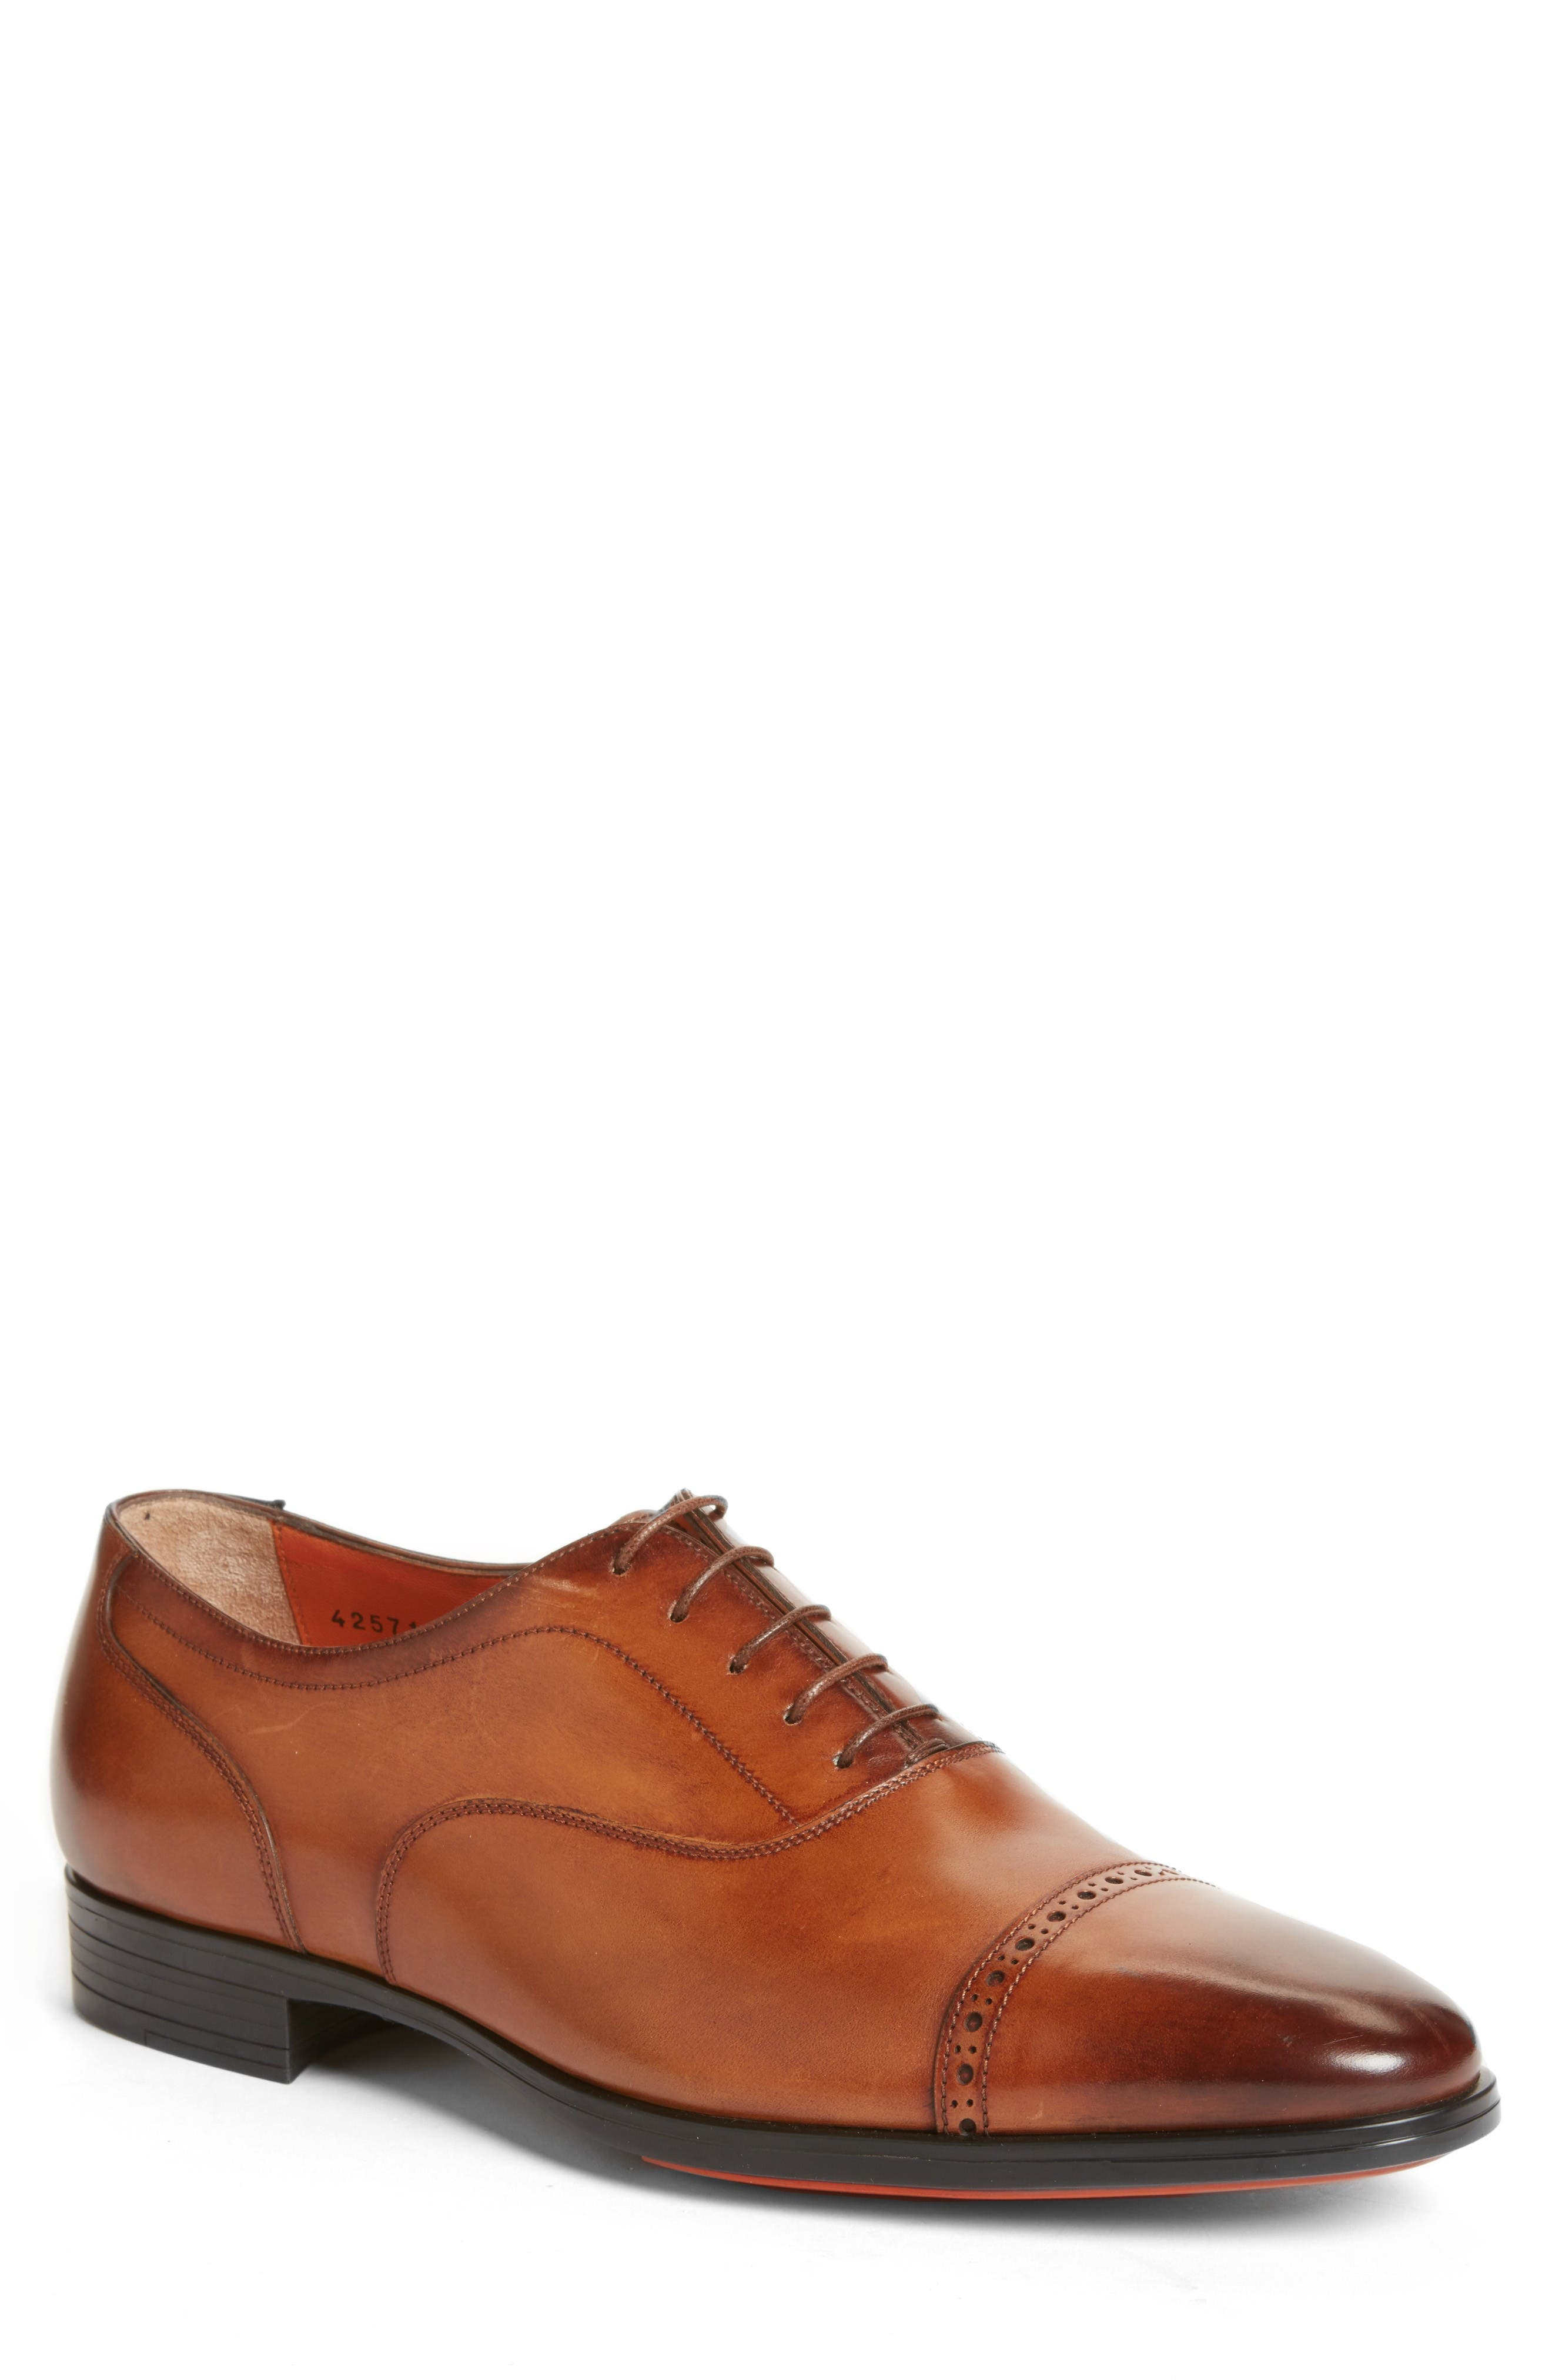 Fitz Cap Toe Oxford,                         Main,                         color, Tan Leather